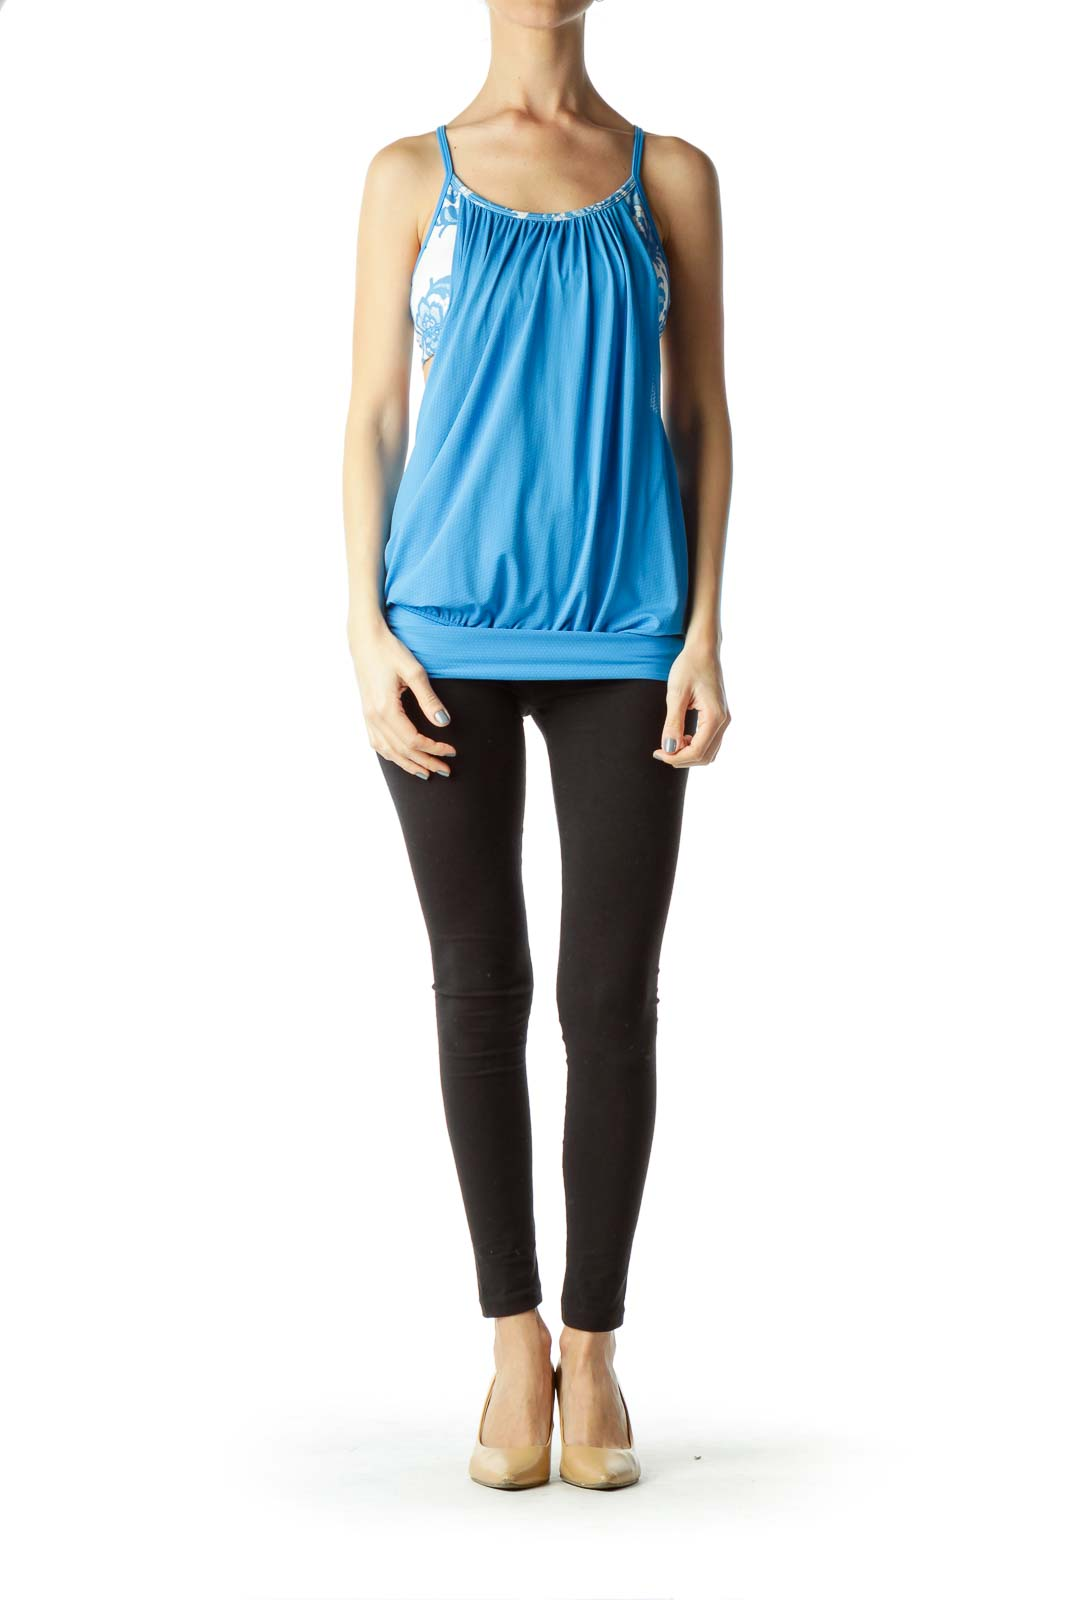 Blue Yoga Top with Printed Built-In Bra